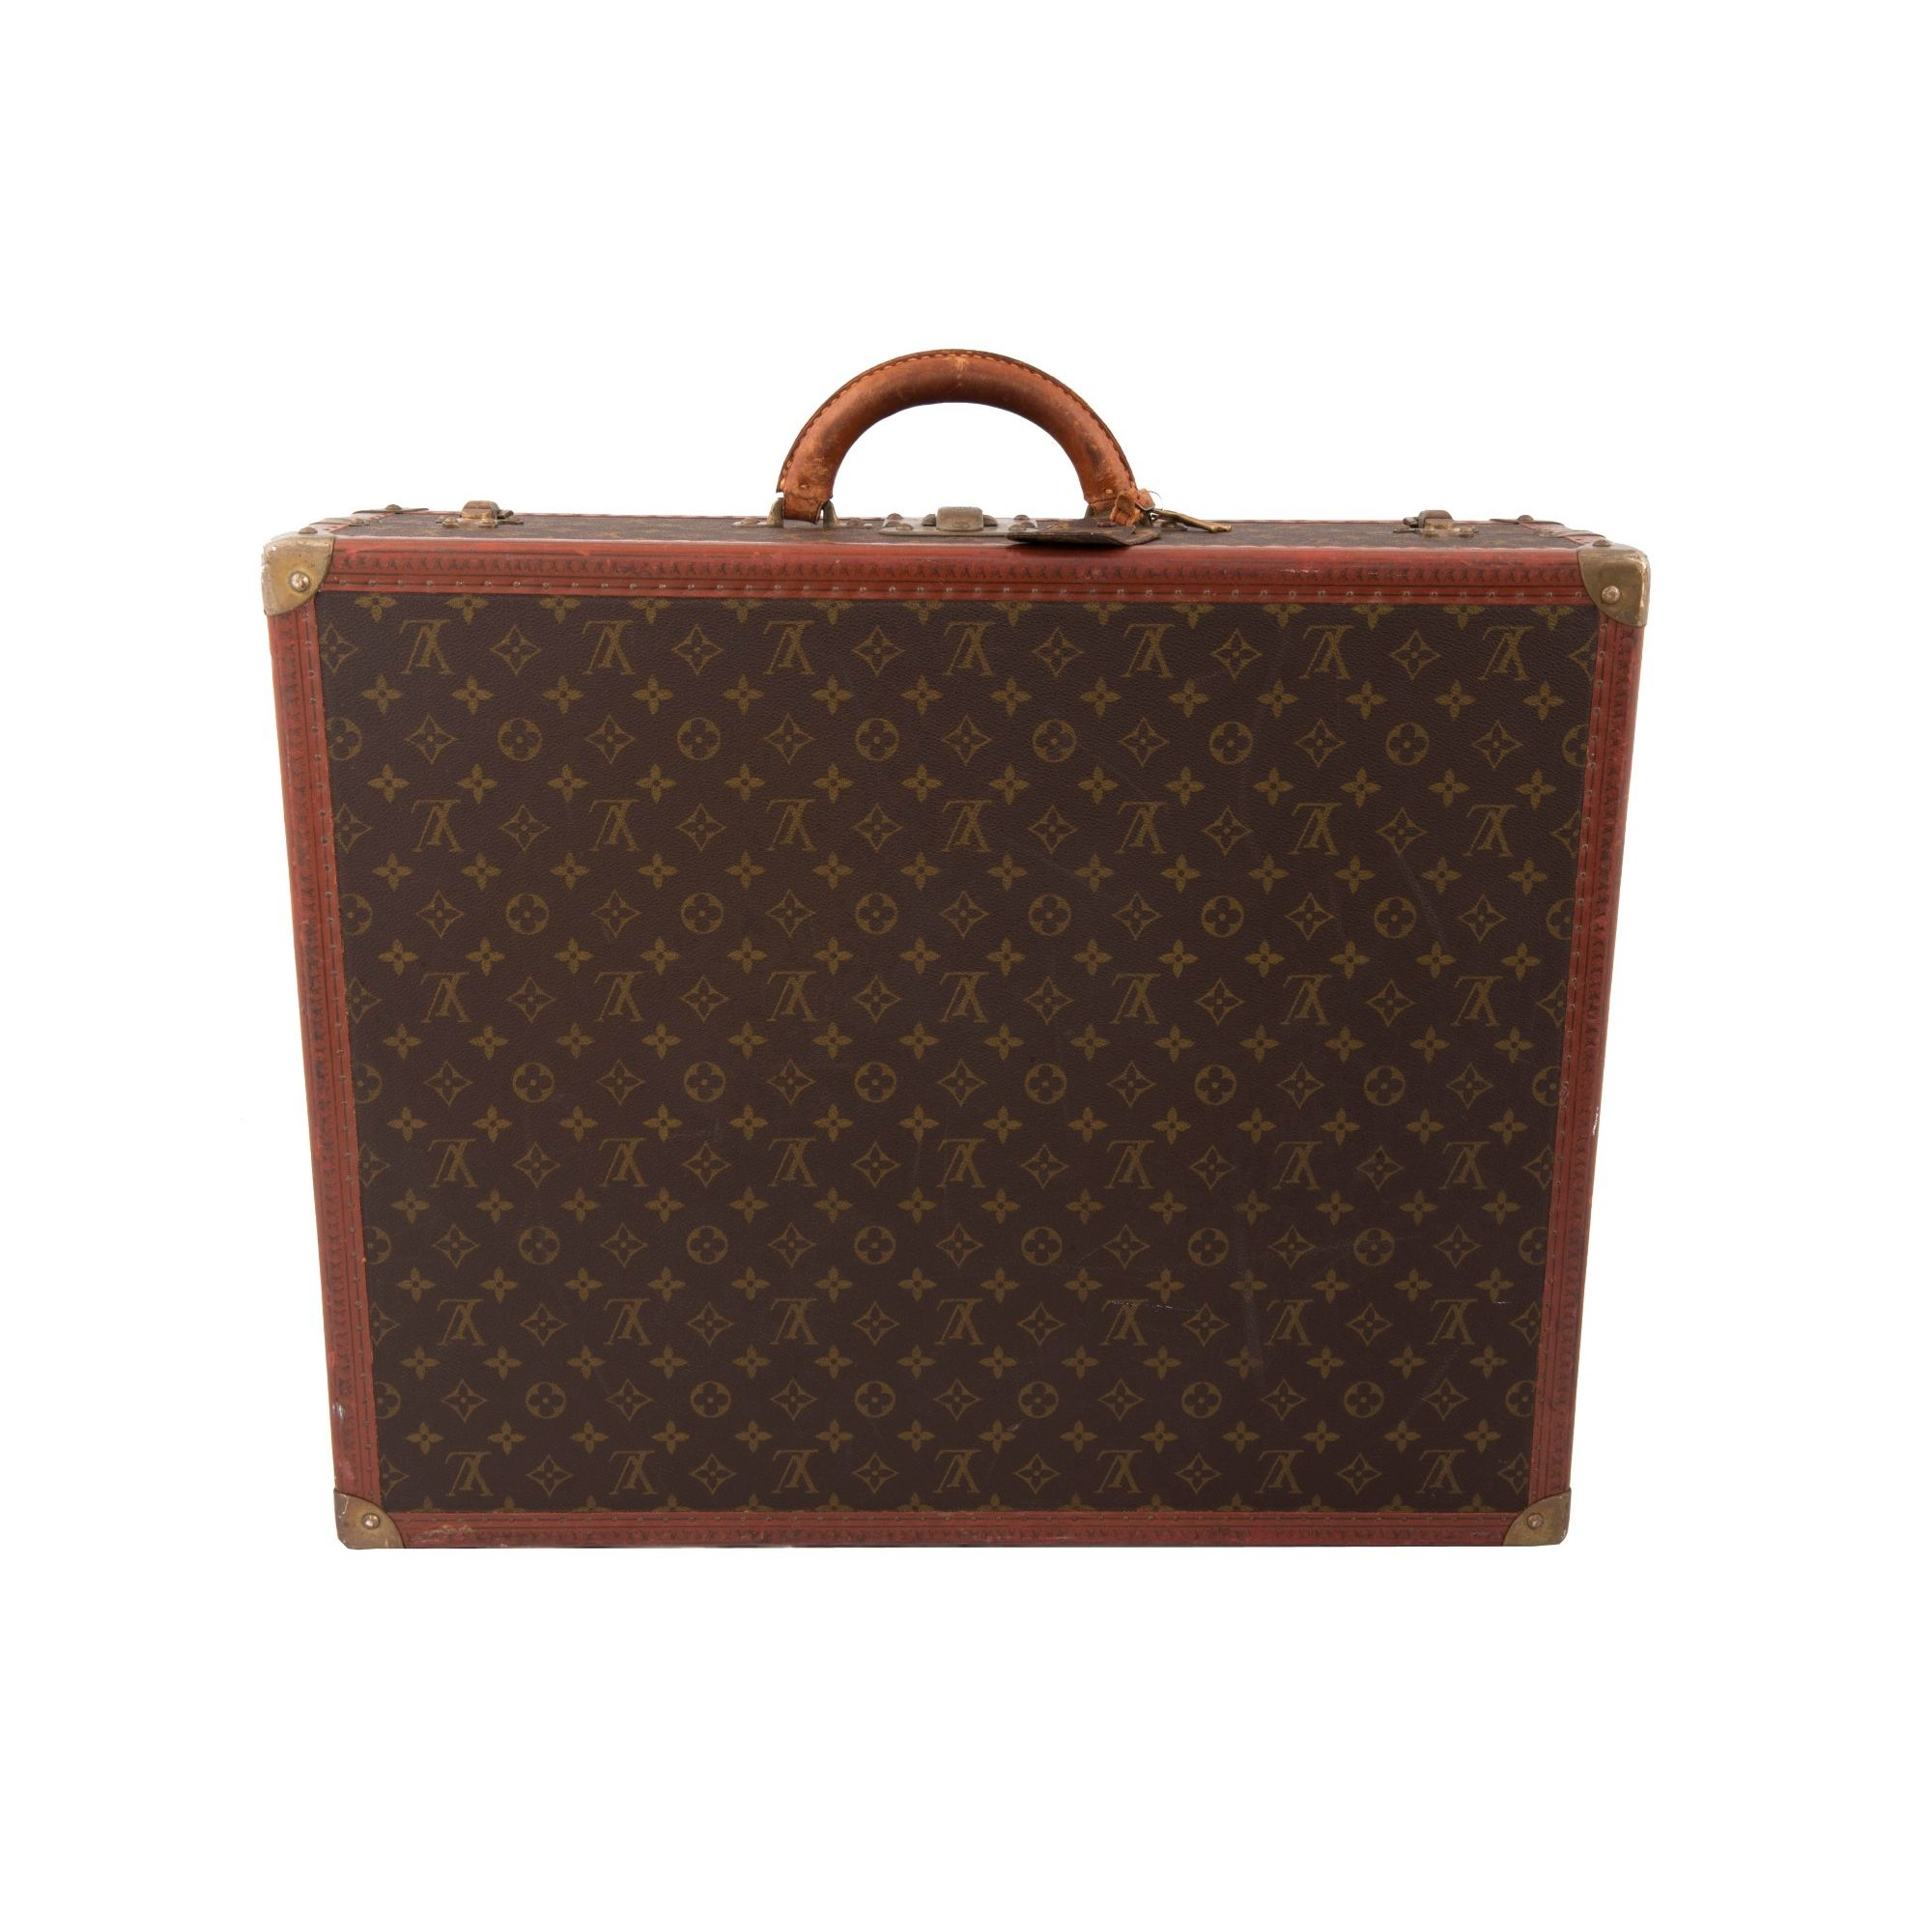 e9b5c0820aa Mallette LOUIS VUITTON marron - 7907055